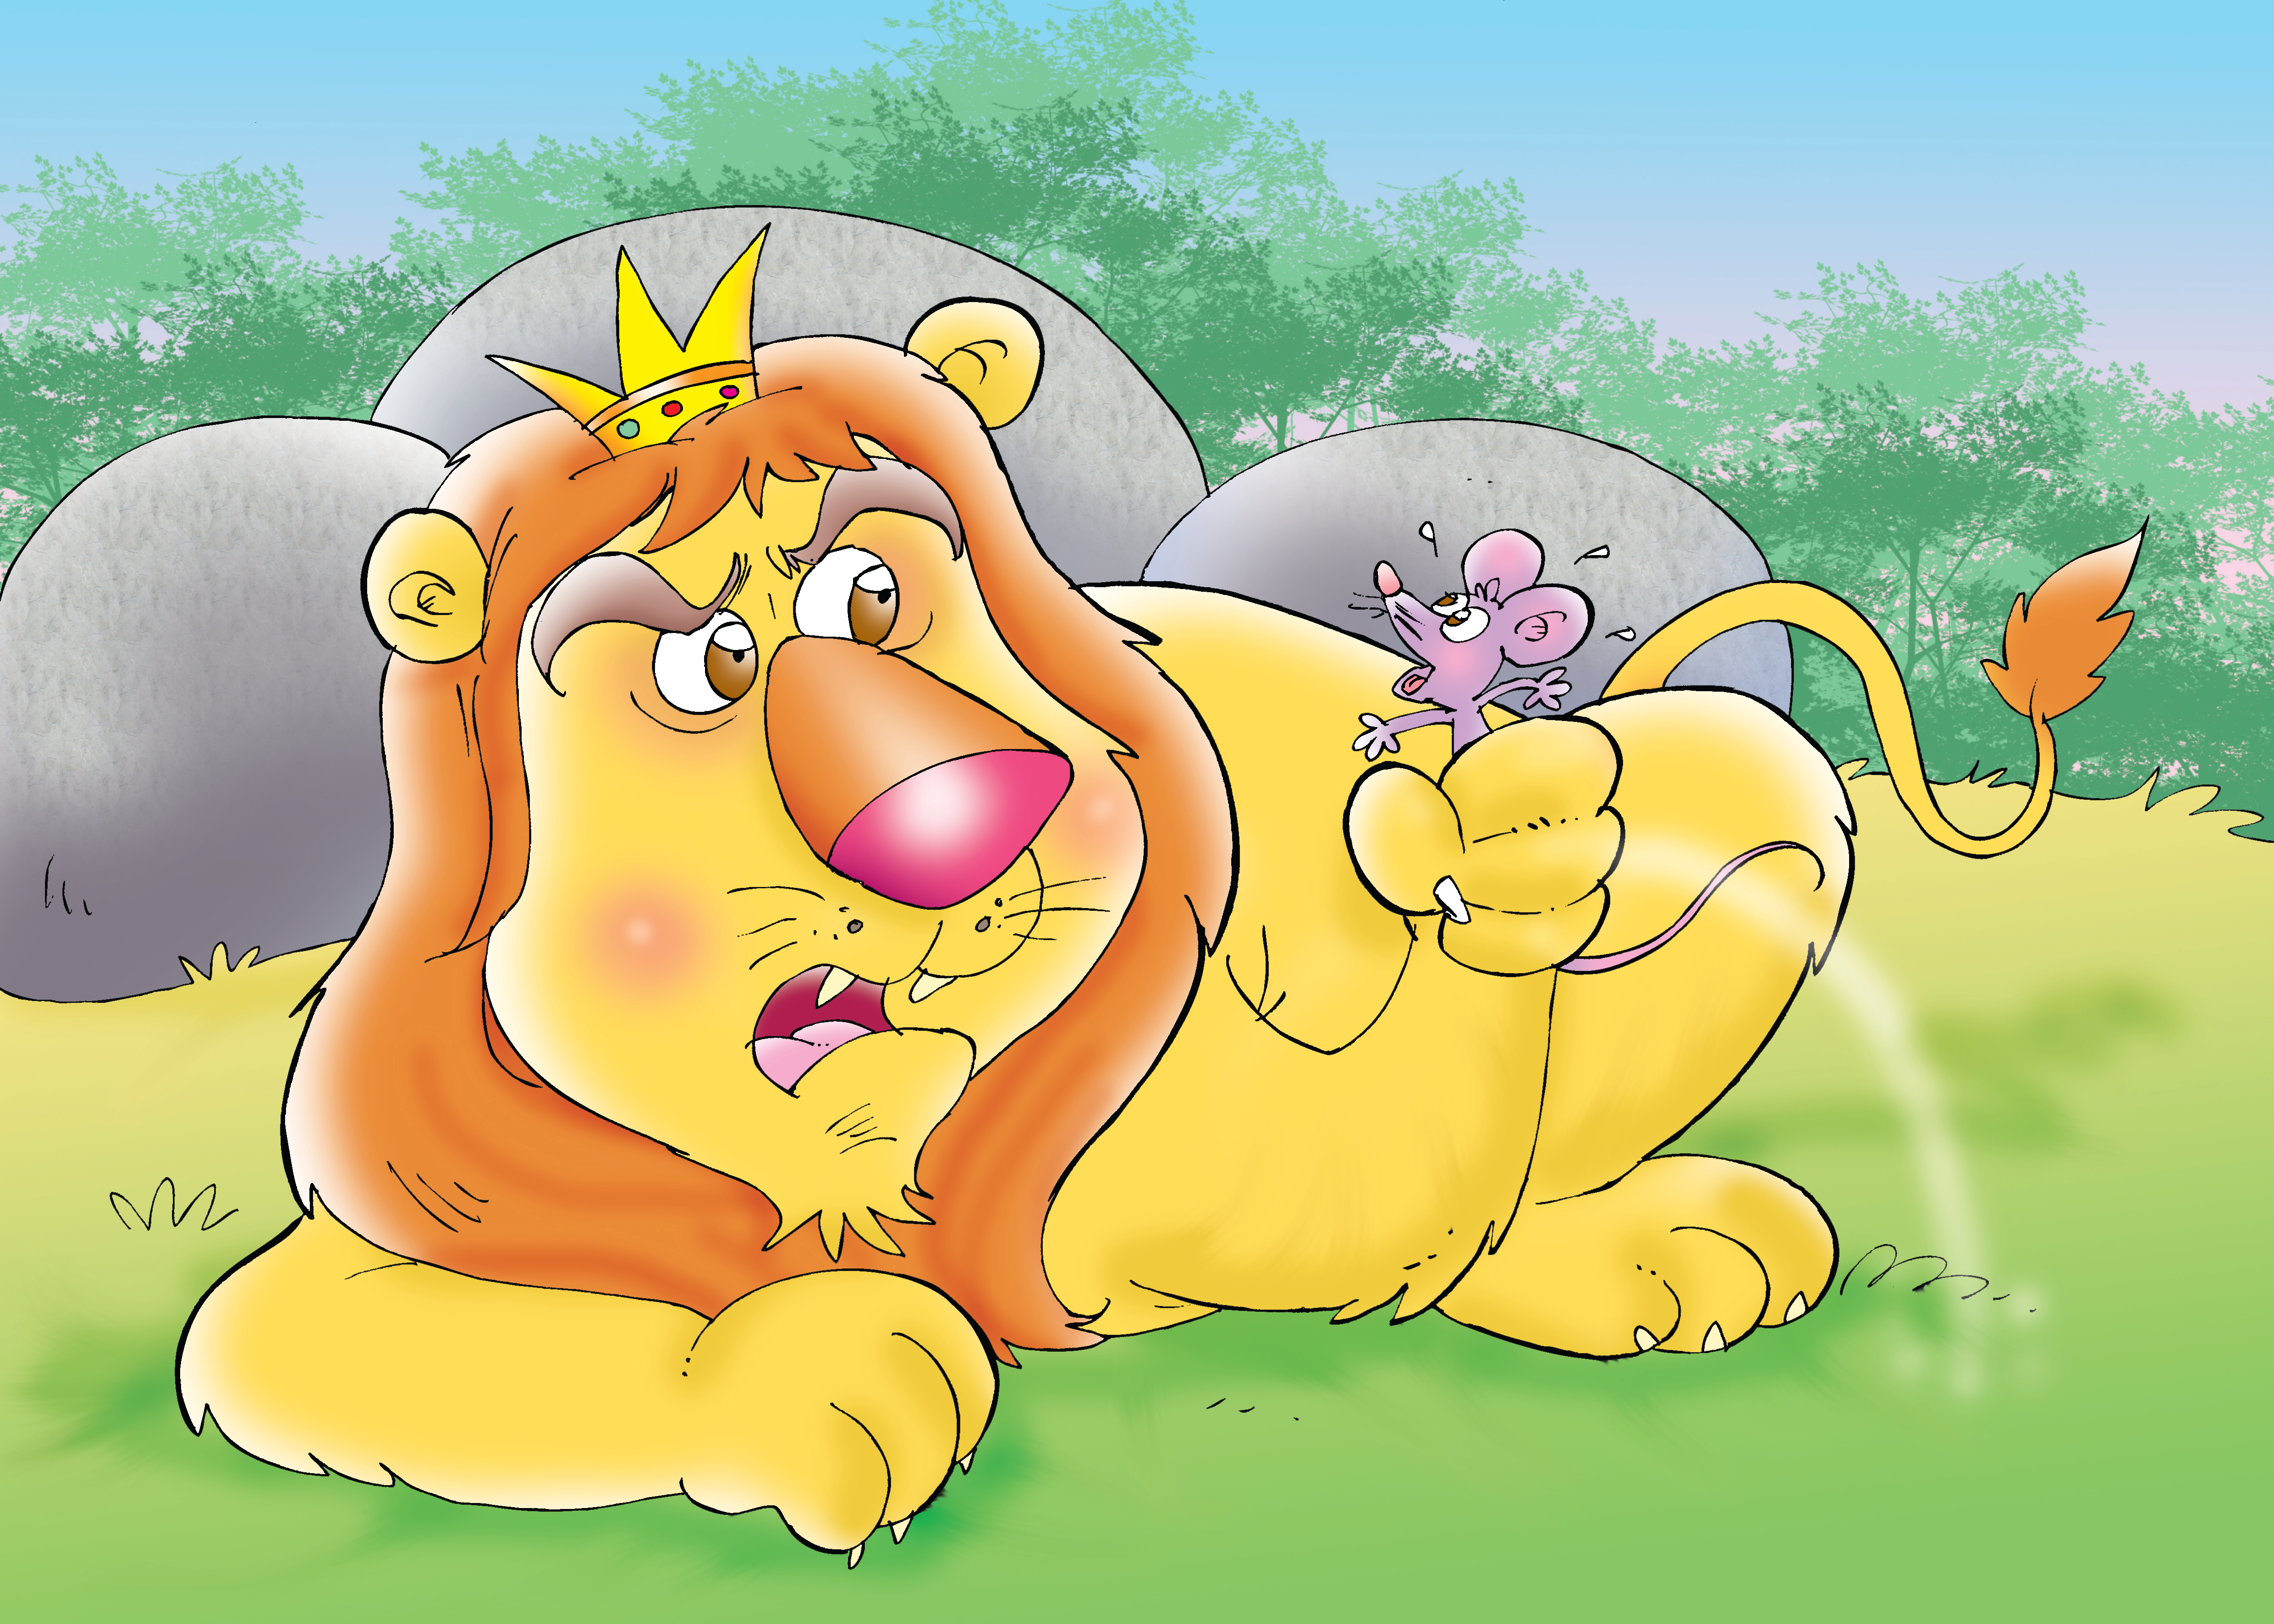 The Lion grabbing the mouse